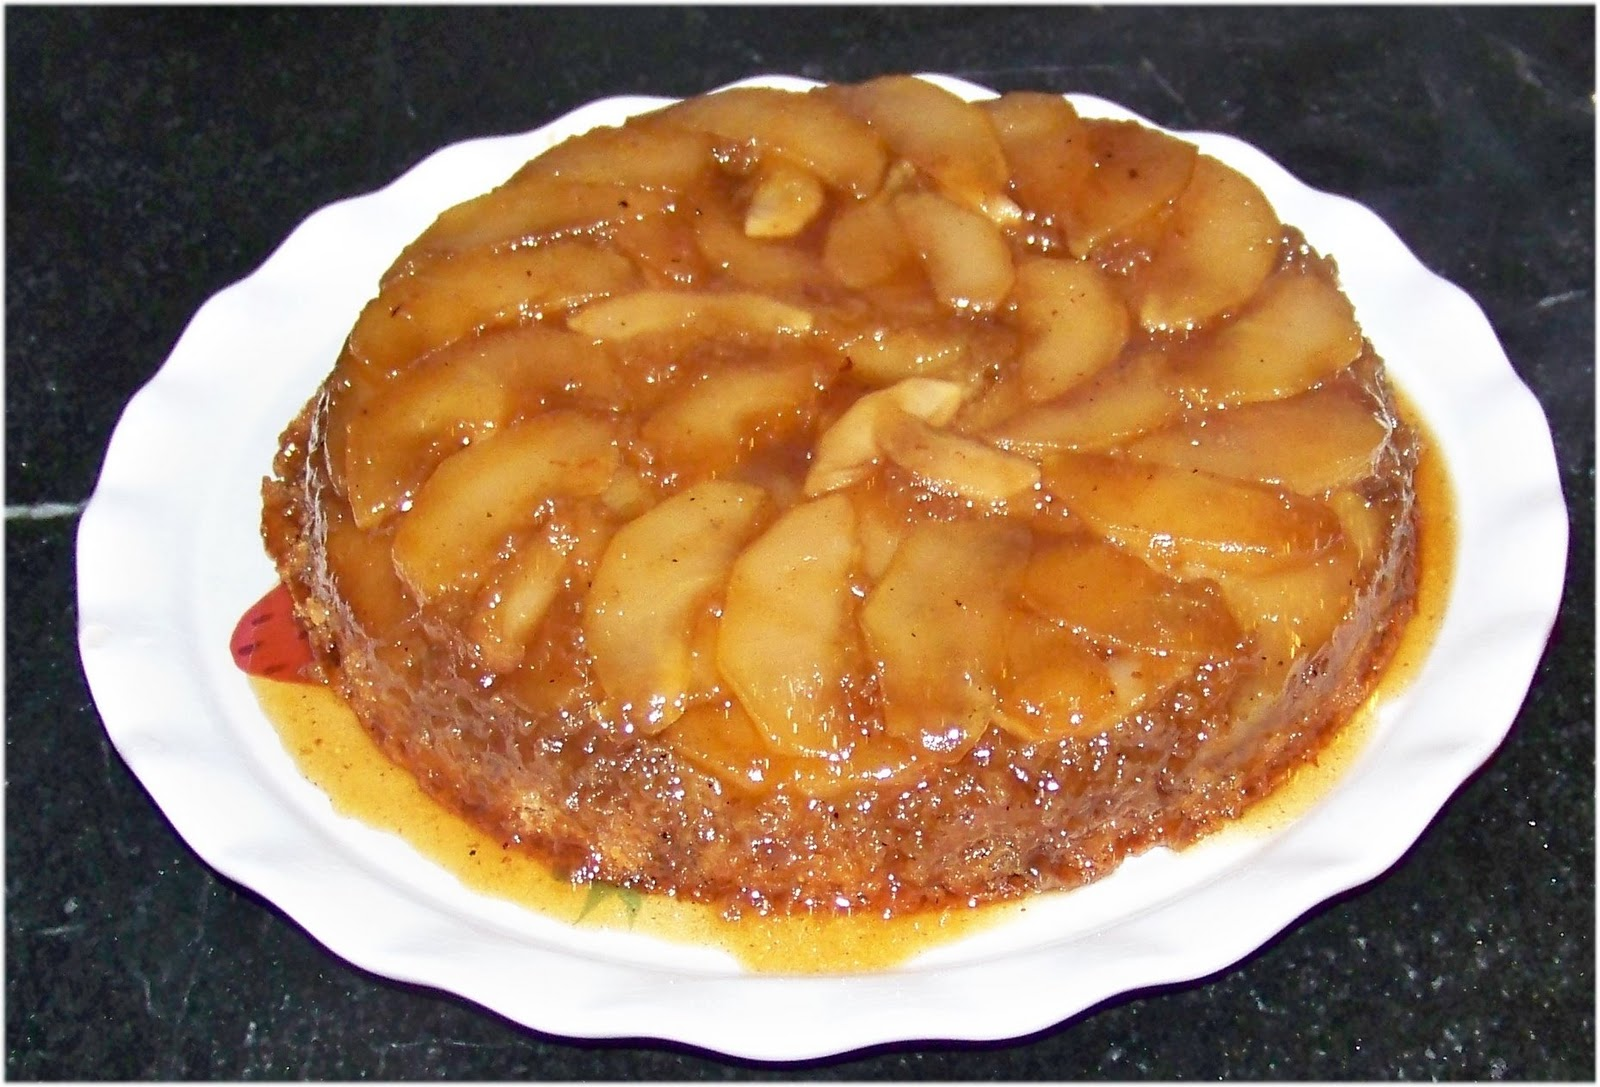 Sugar & Spice in the land of Balls & Sticks: Apple Upside-Down Cake